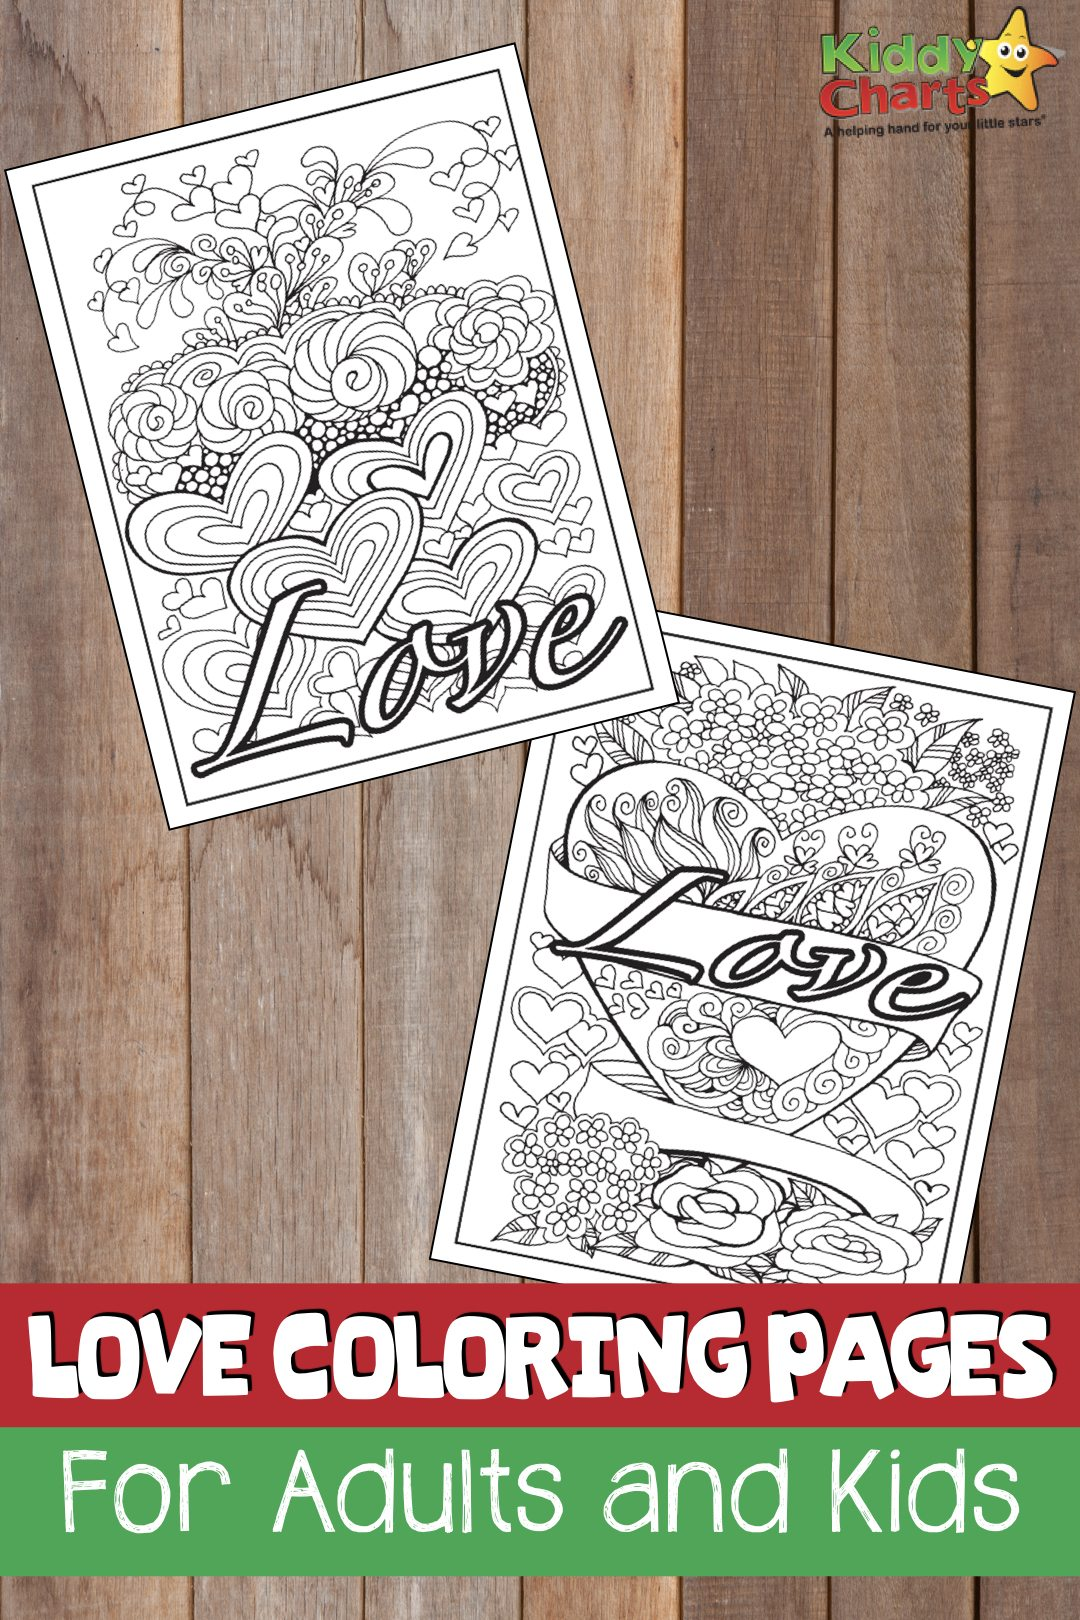 Love coloring pages for adults and kids